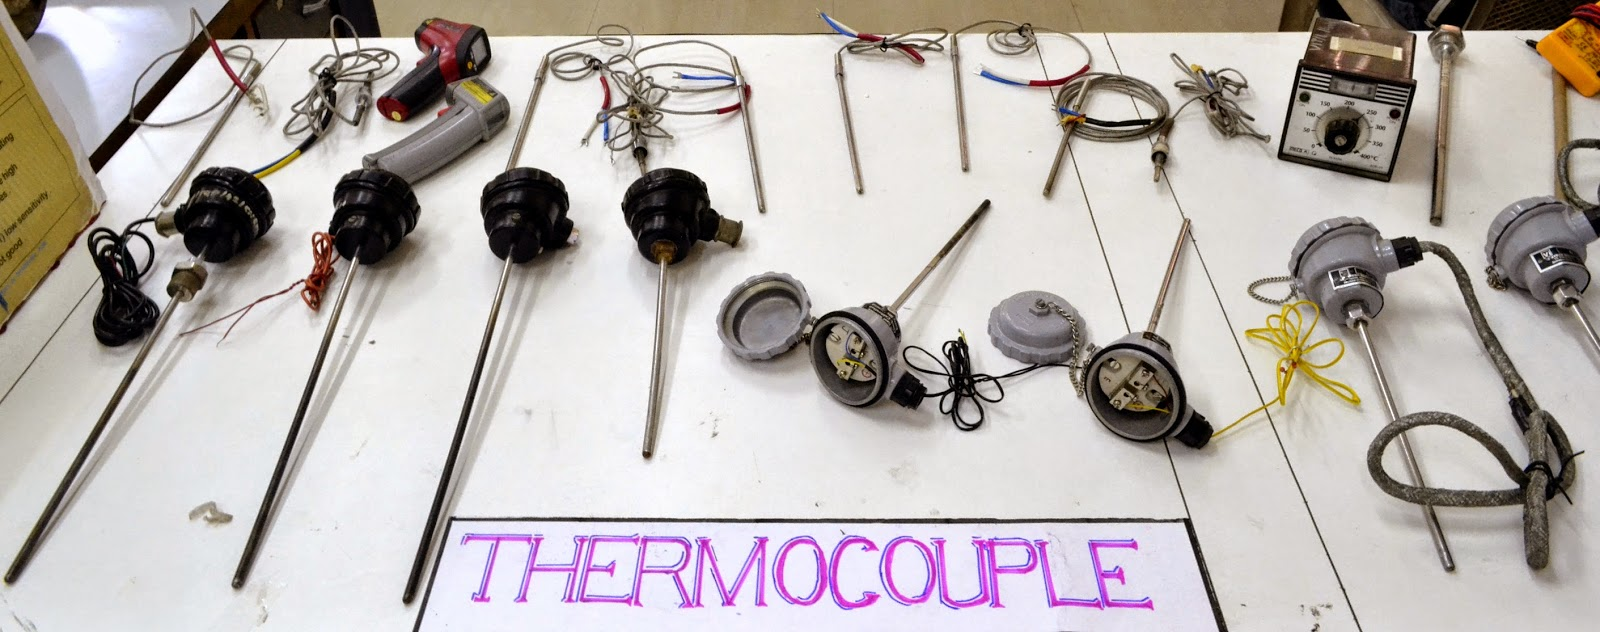 Types of thermocouples